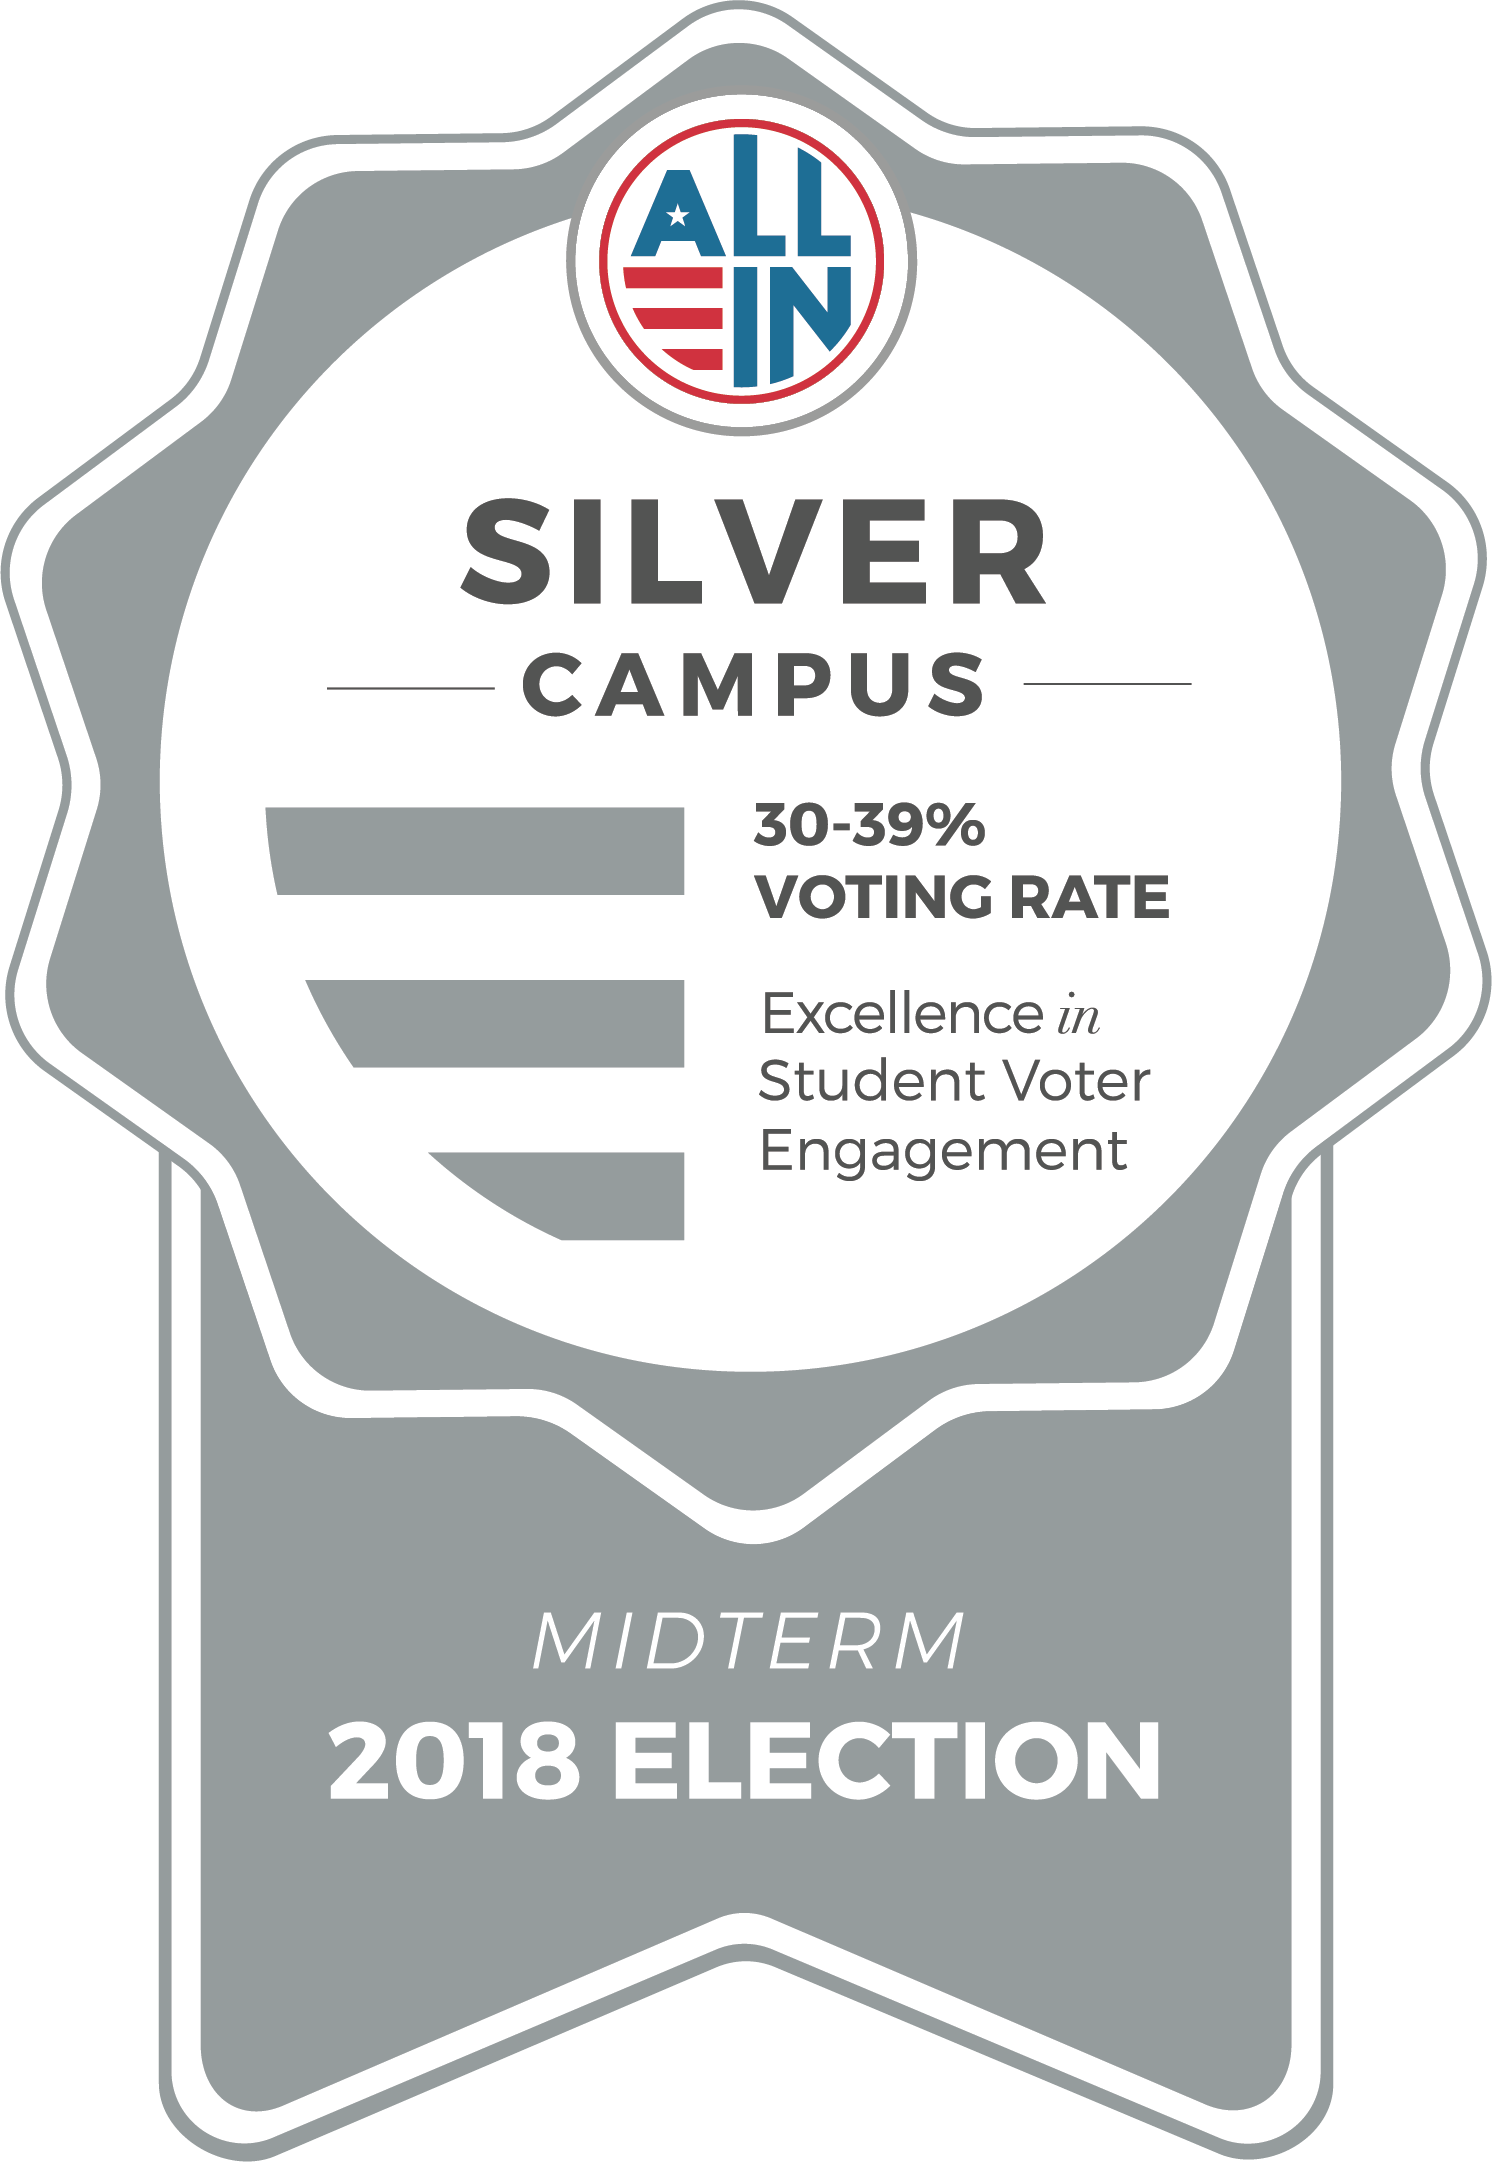 Mid receives award for student voting engagement.